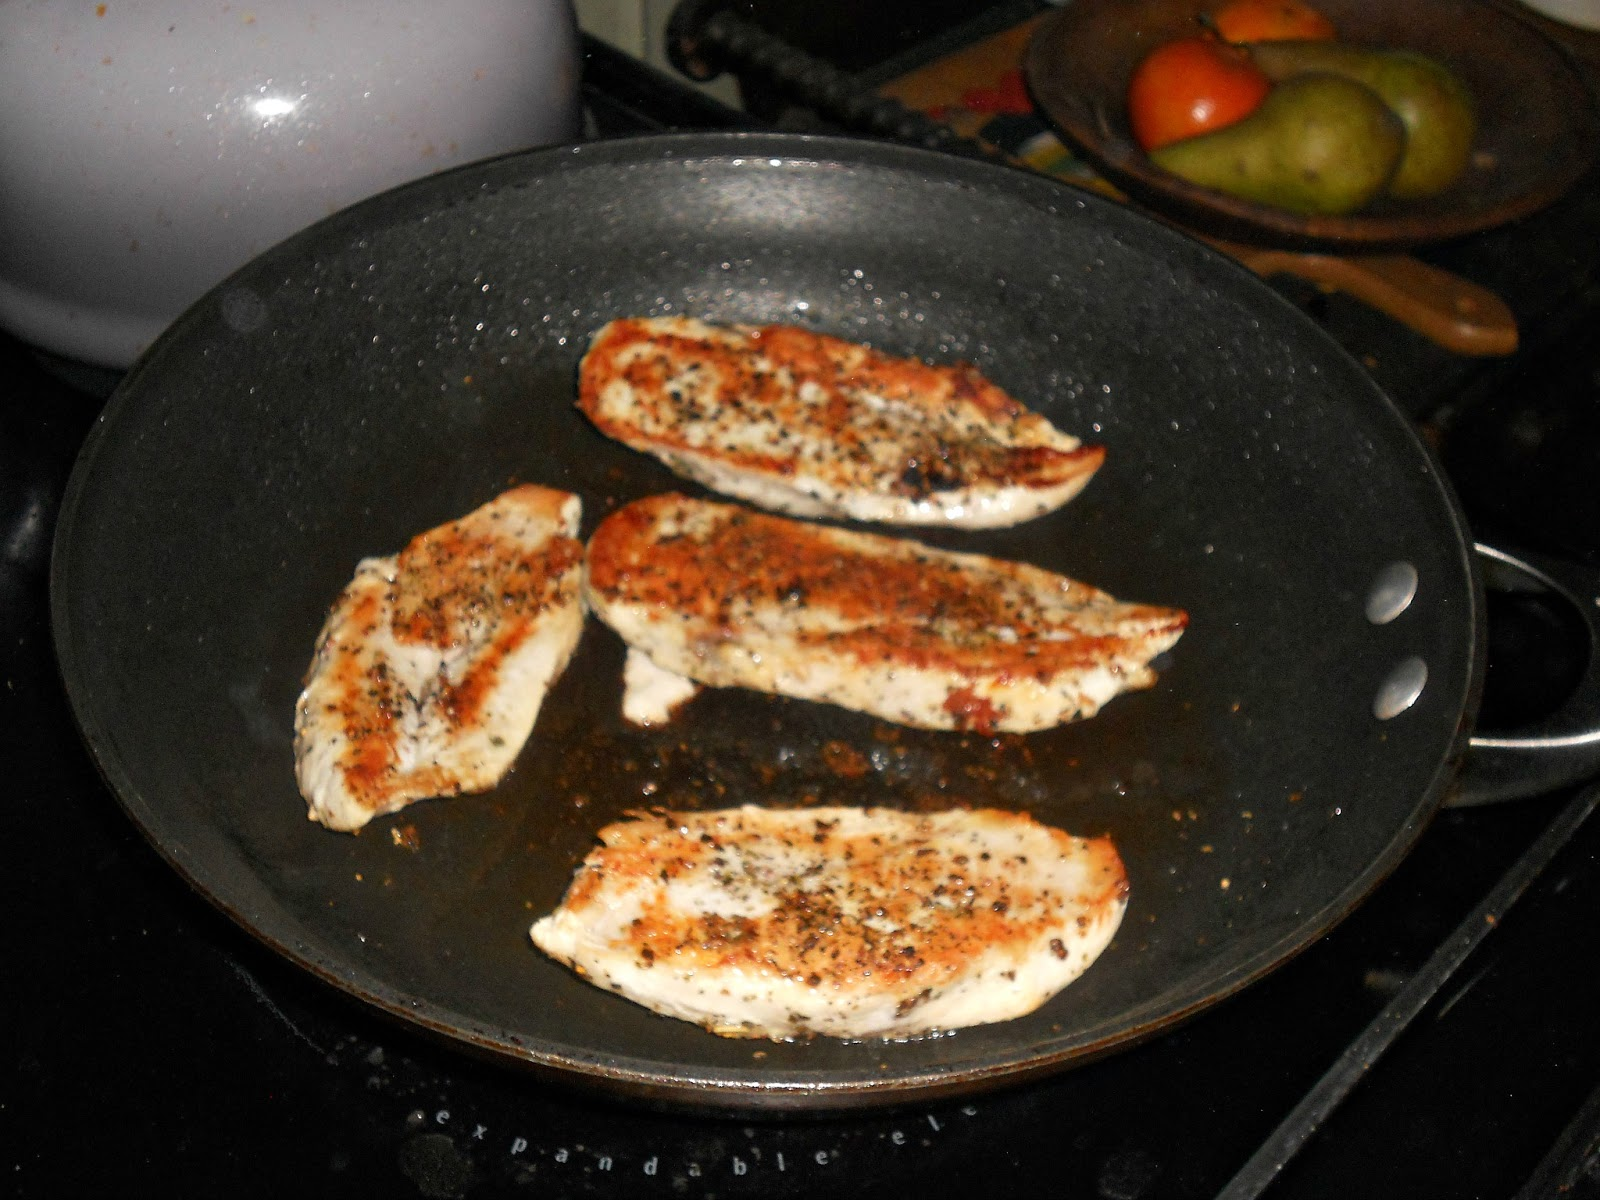 Season The Chicken Breasts With Salt And Pepper Heat 1 Tablespoon Of Oil In A Skillet Over Medium High Heat Cook The Chicken For 6 8 Minutes On Each Side